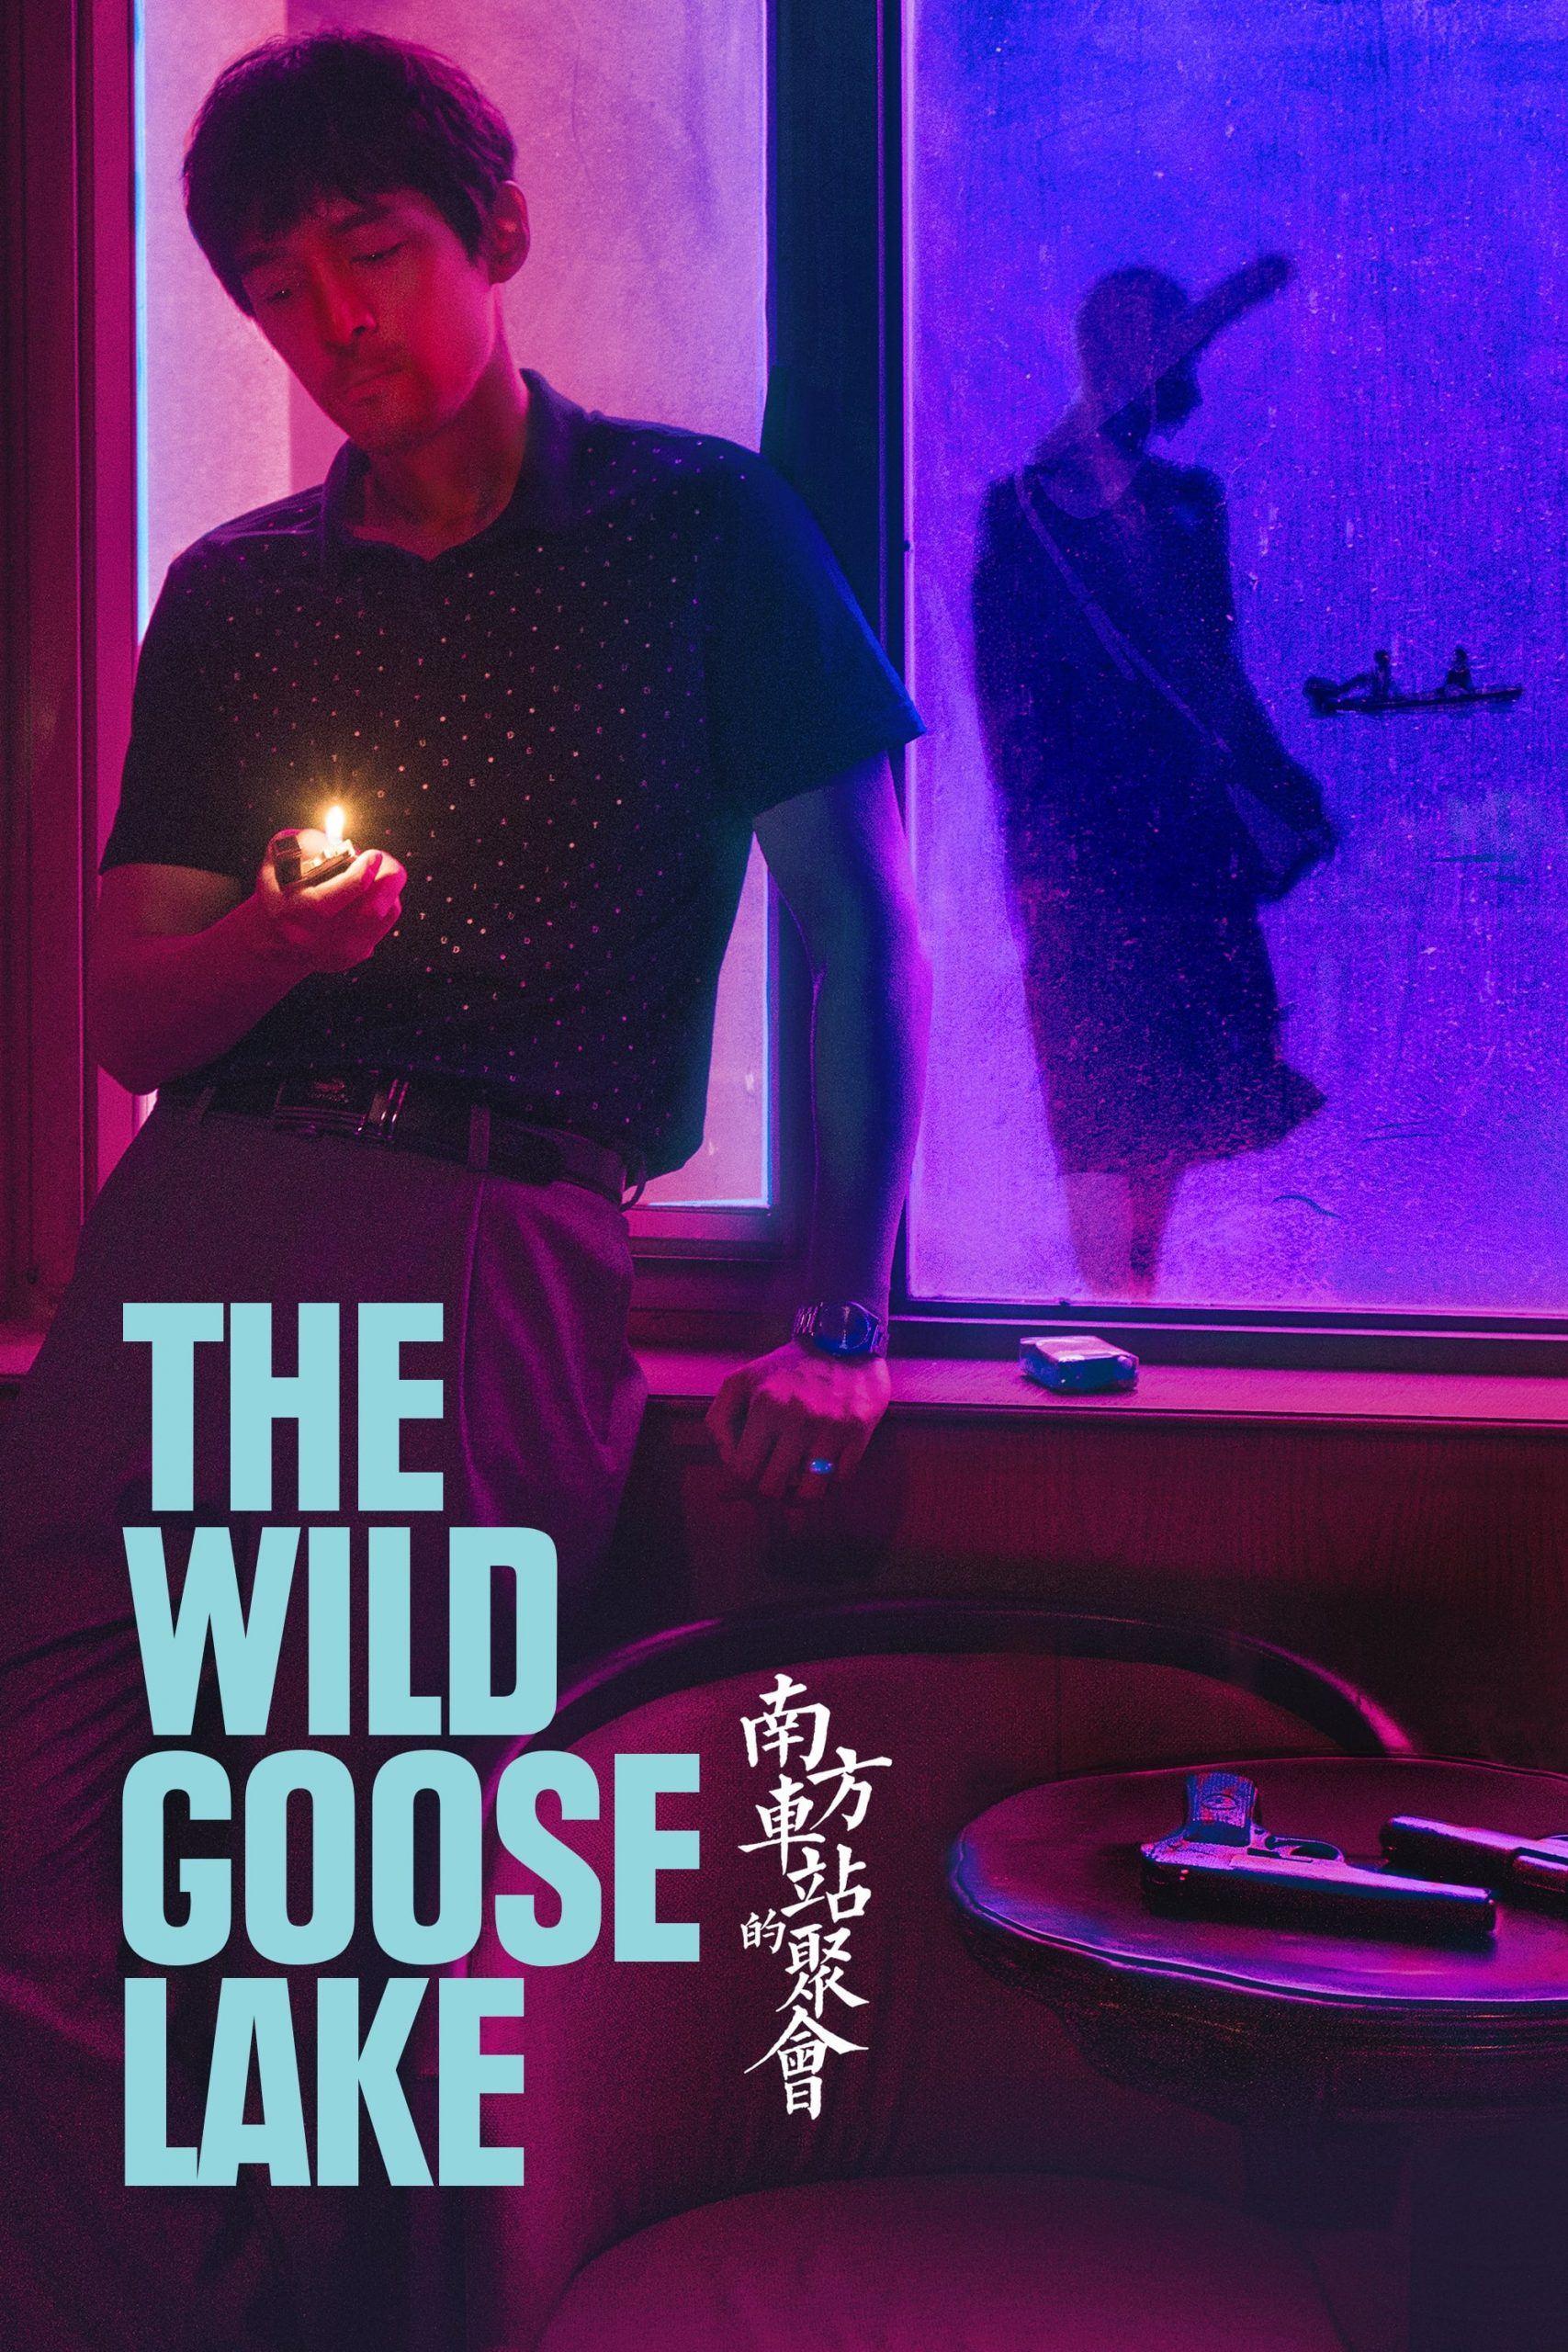 Poster for THE WILD GOOSE LAKE